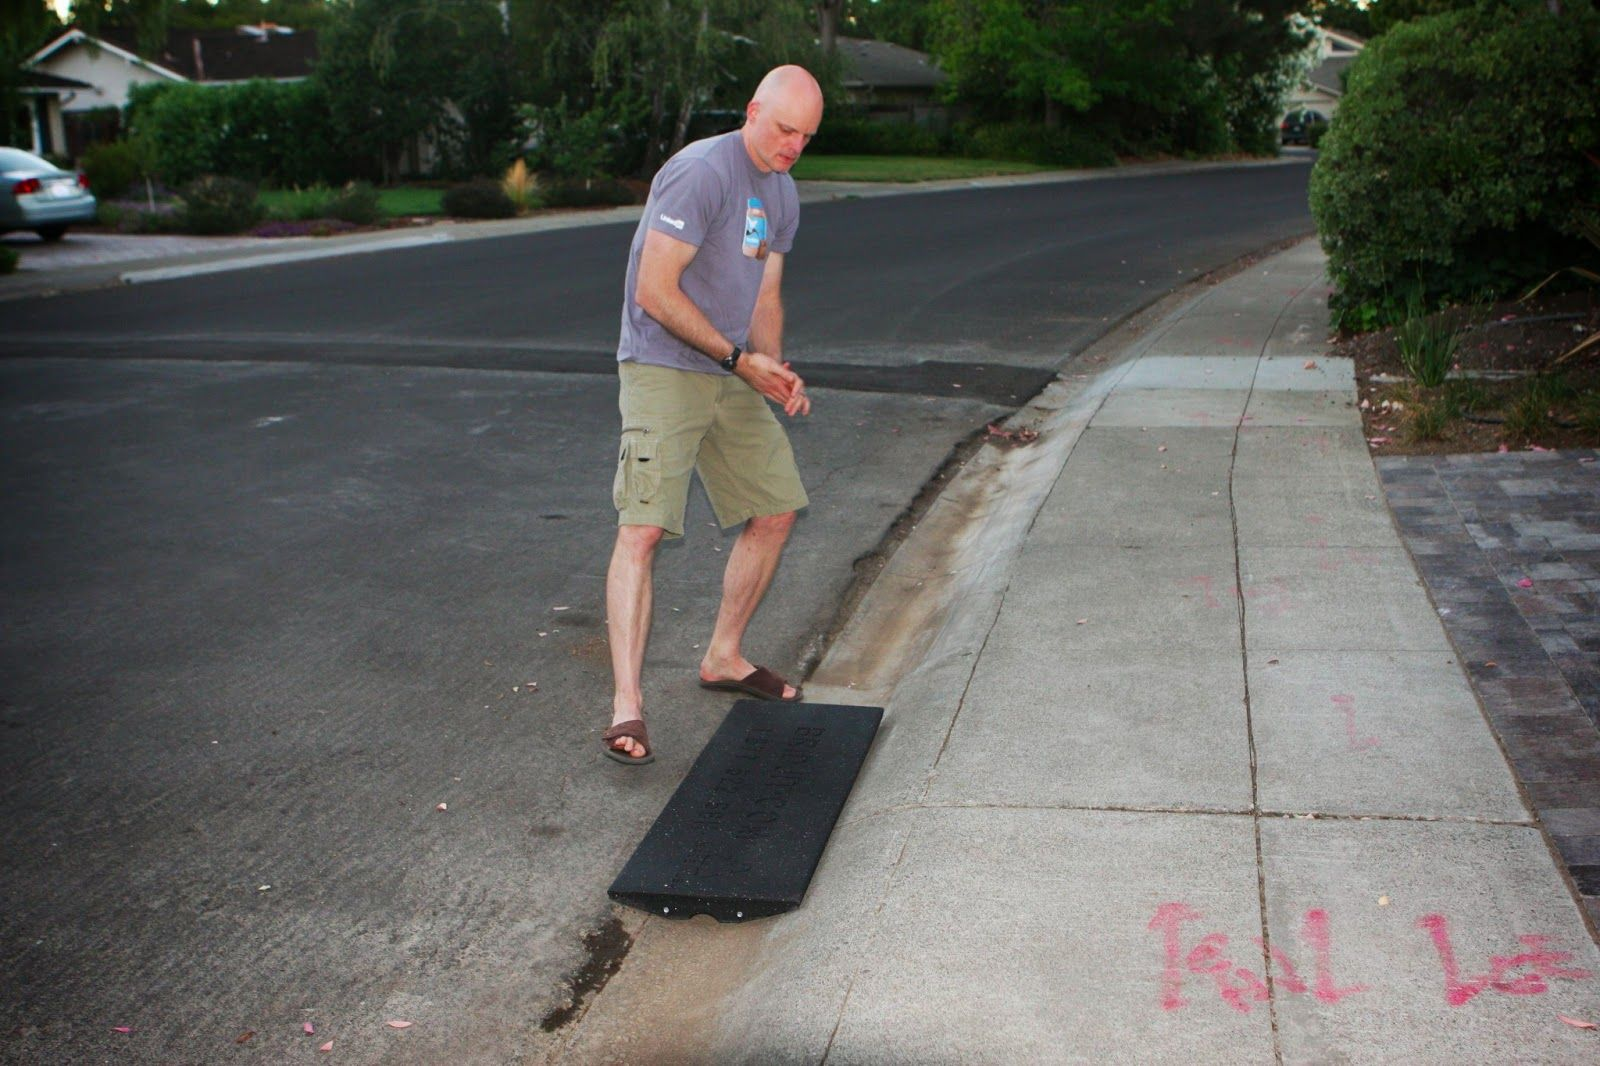 Homecrunch a quick and easy driveway apron thumbs up for the homecrunch a quick and easy driveway apron thumbs up for the rubber bridjit curb solutioingenieria Choice Image